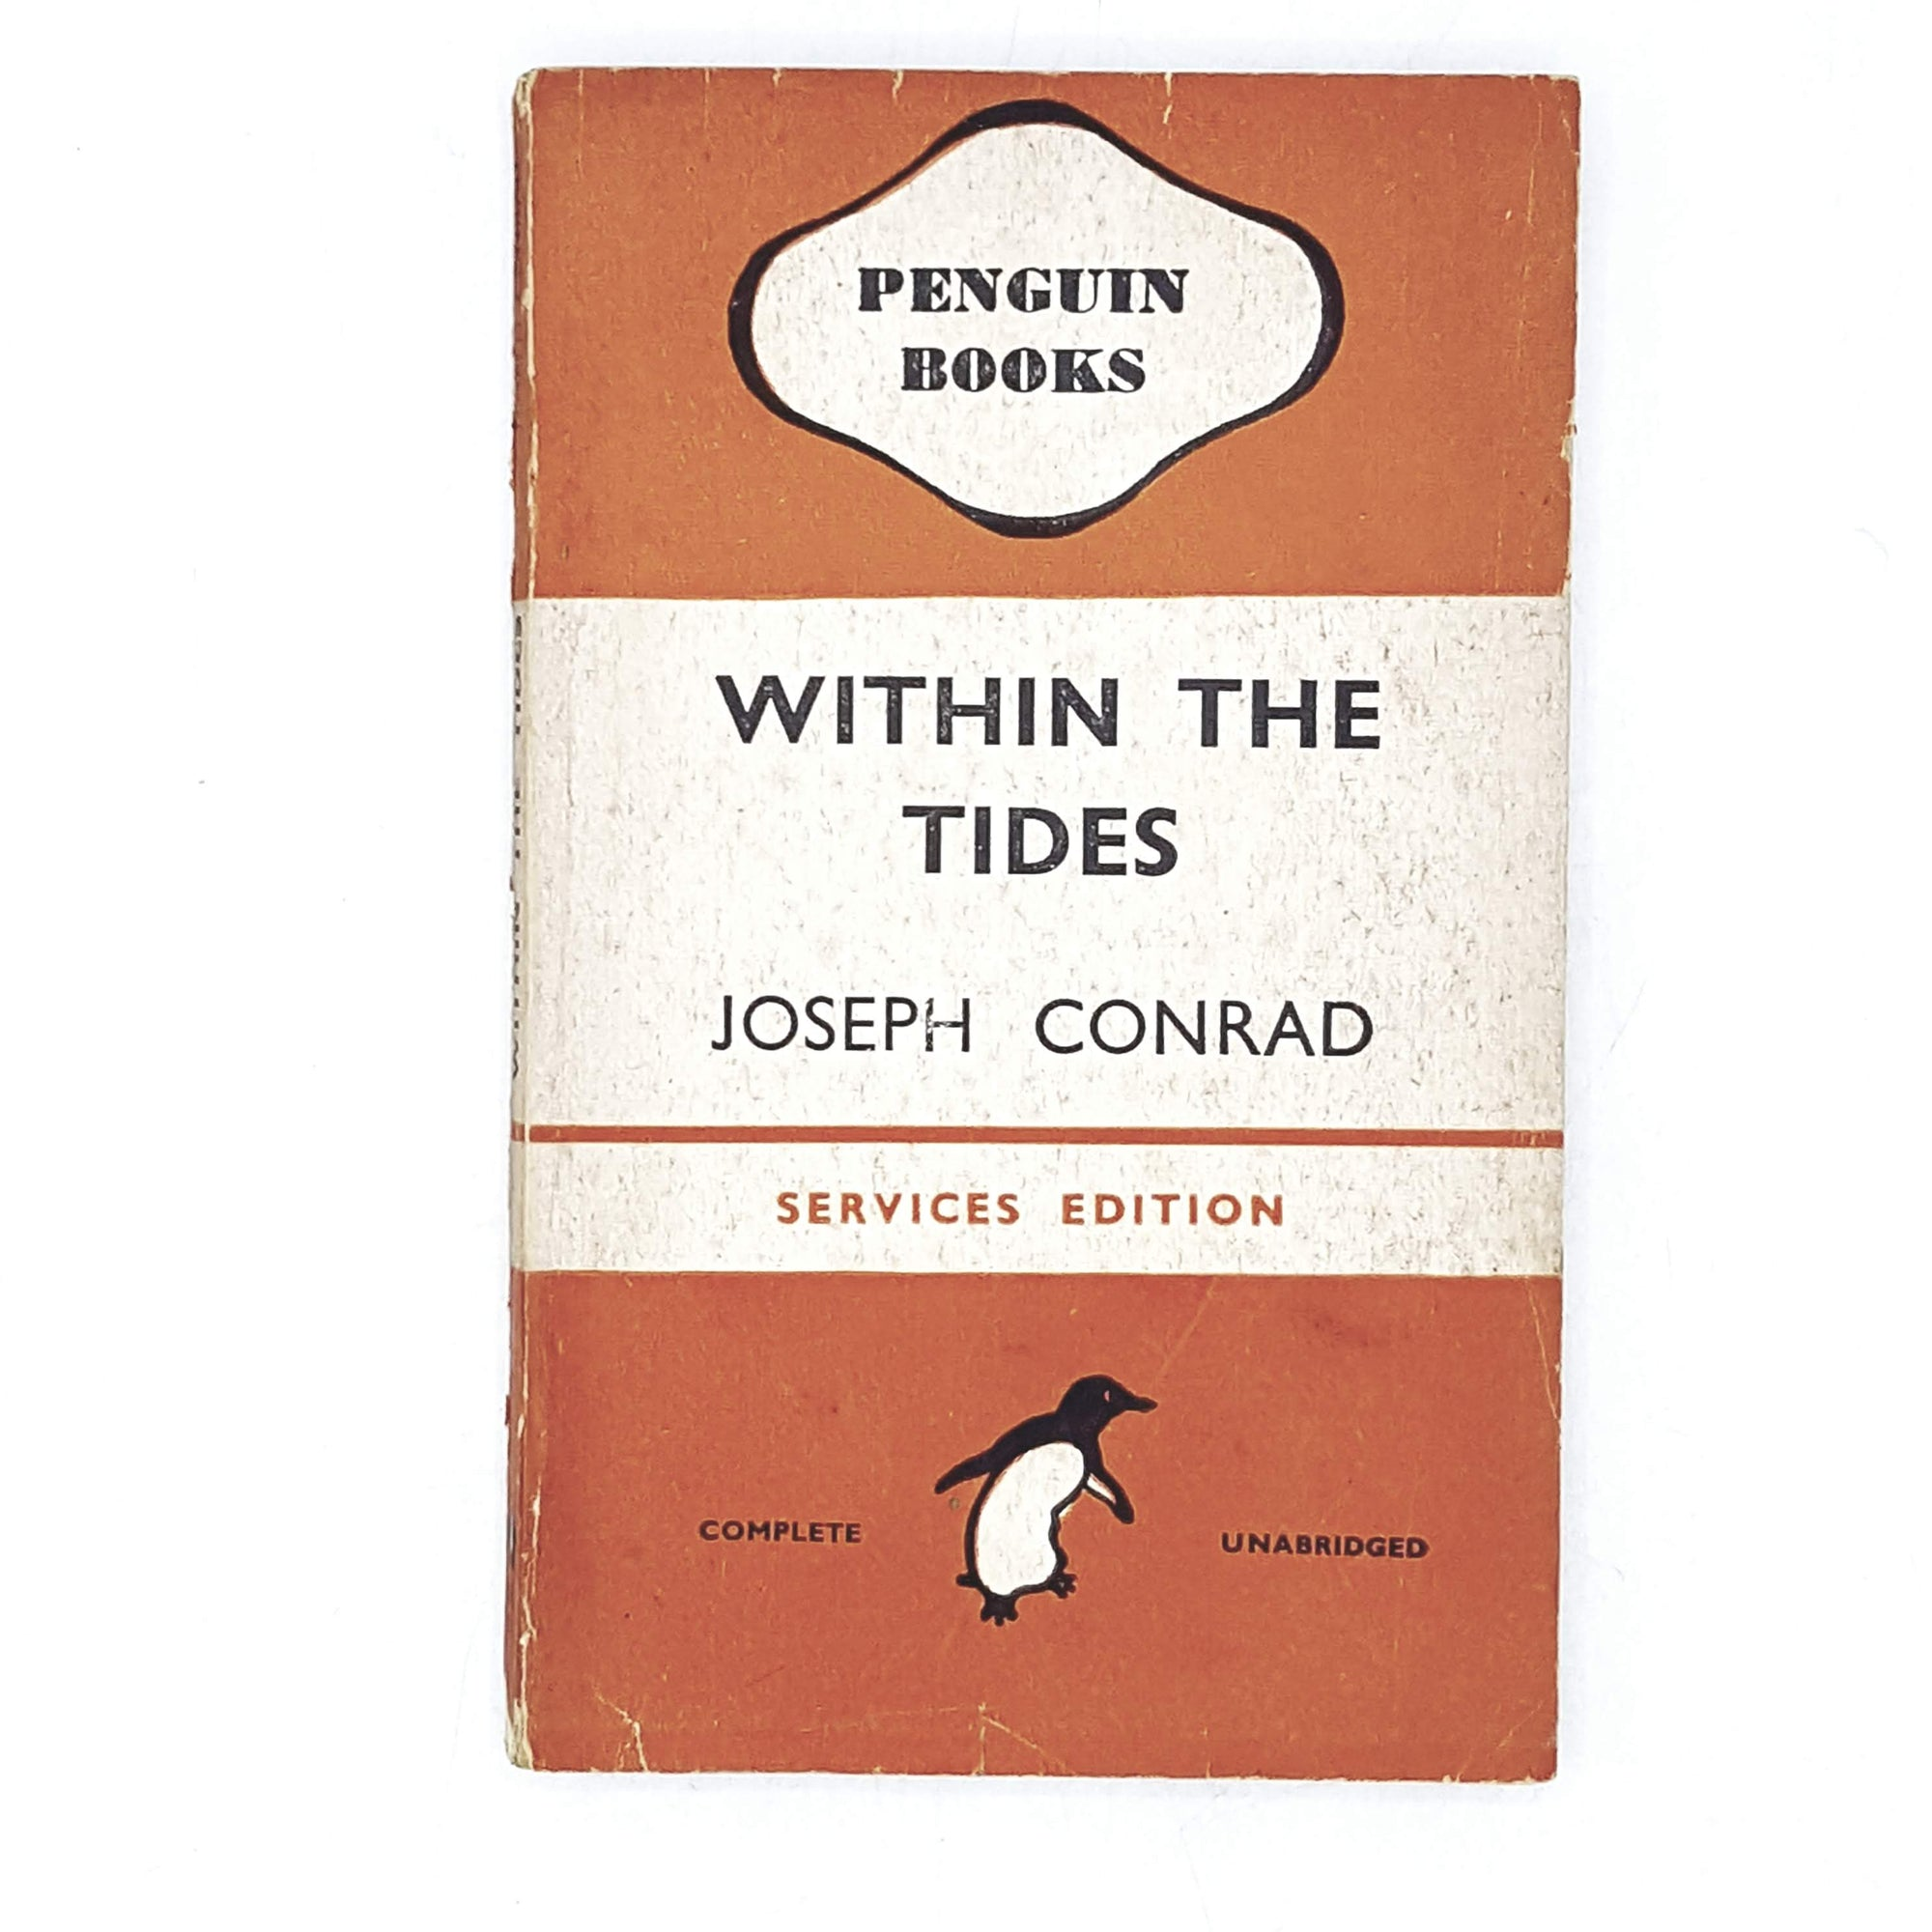 vintage-penguin-within-the-tides-by-joseph-conrad-1945-orange-classic literature-country-house-library